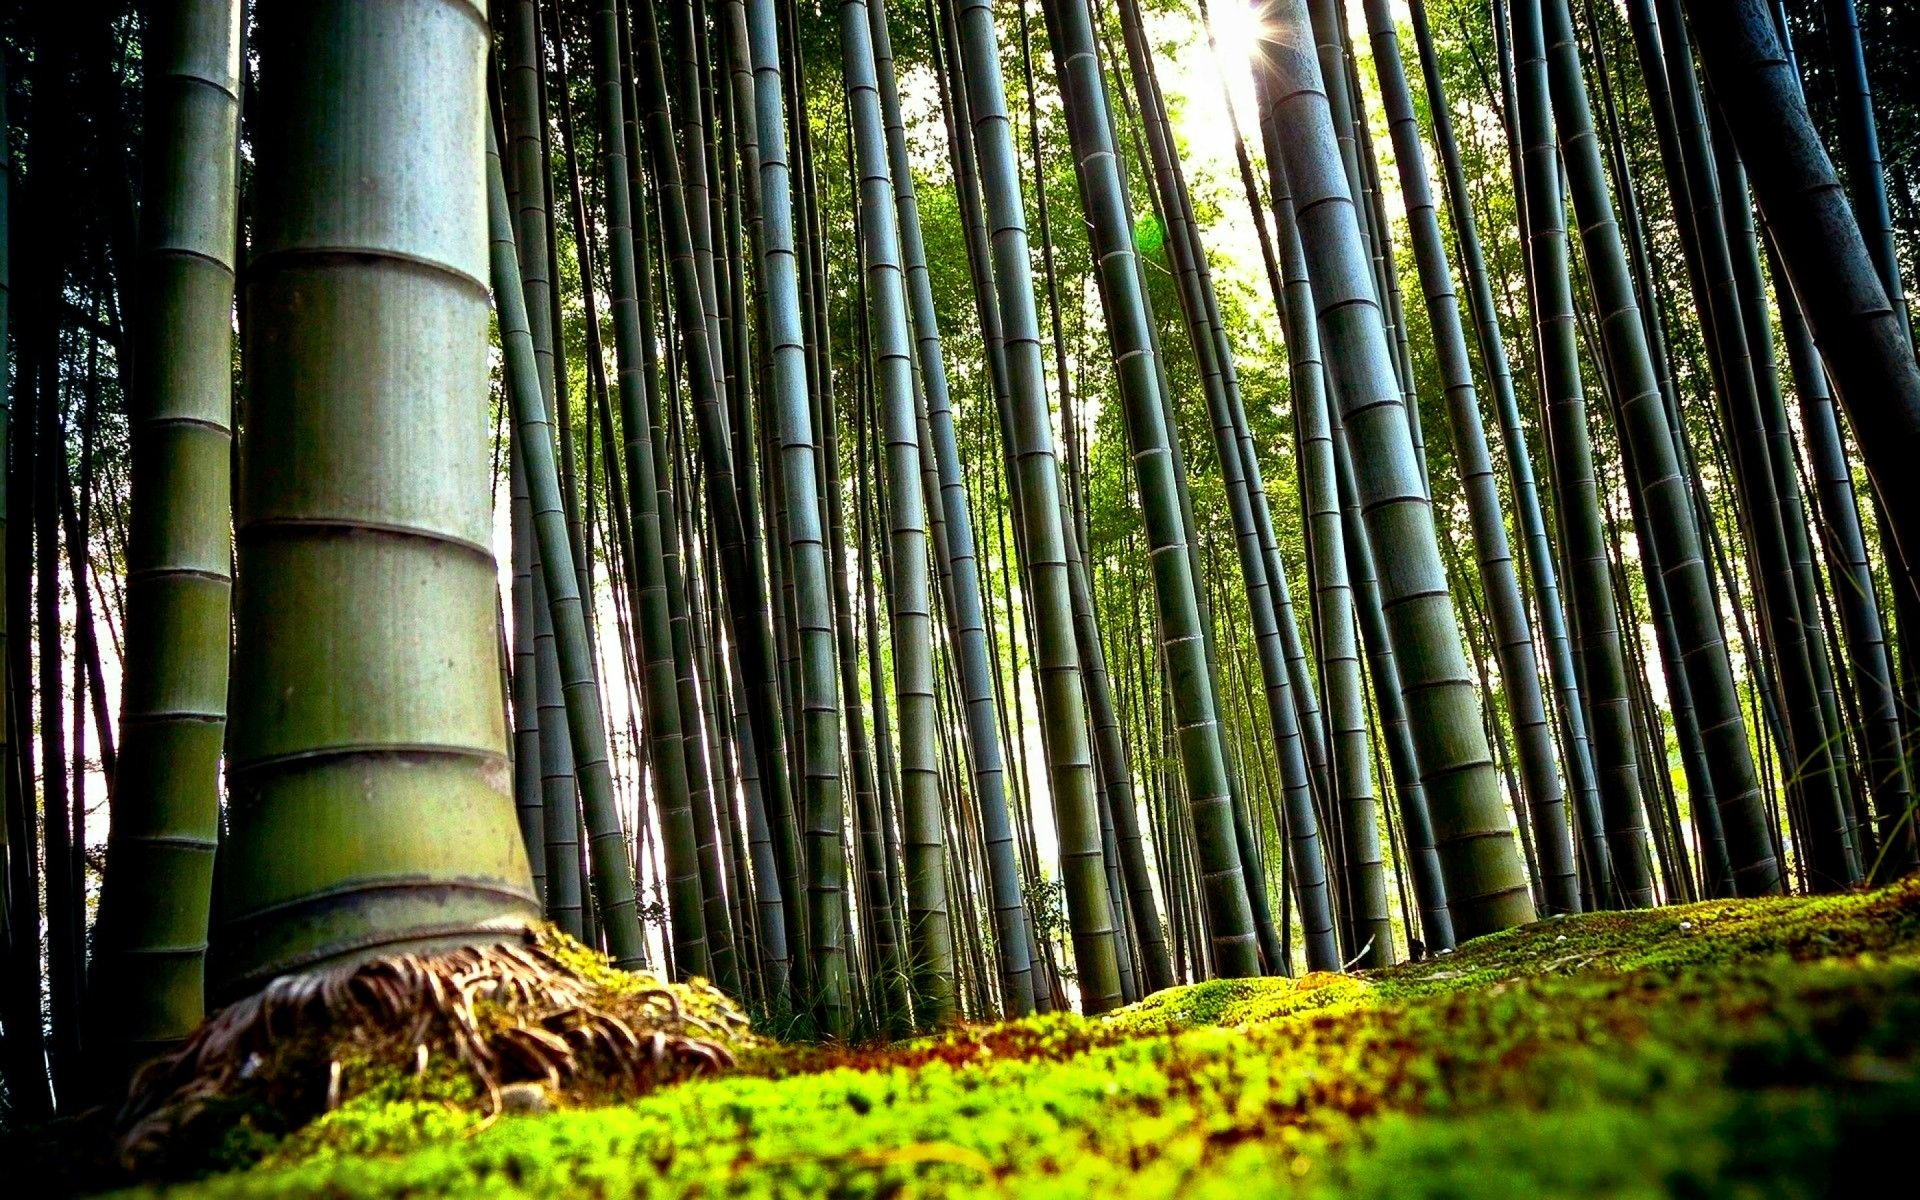 97 Bamboo Hd Wallpapers Background Images Wallpaper Abyss